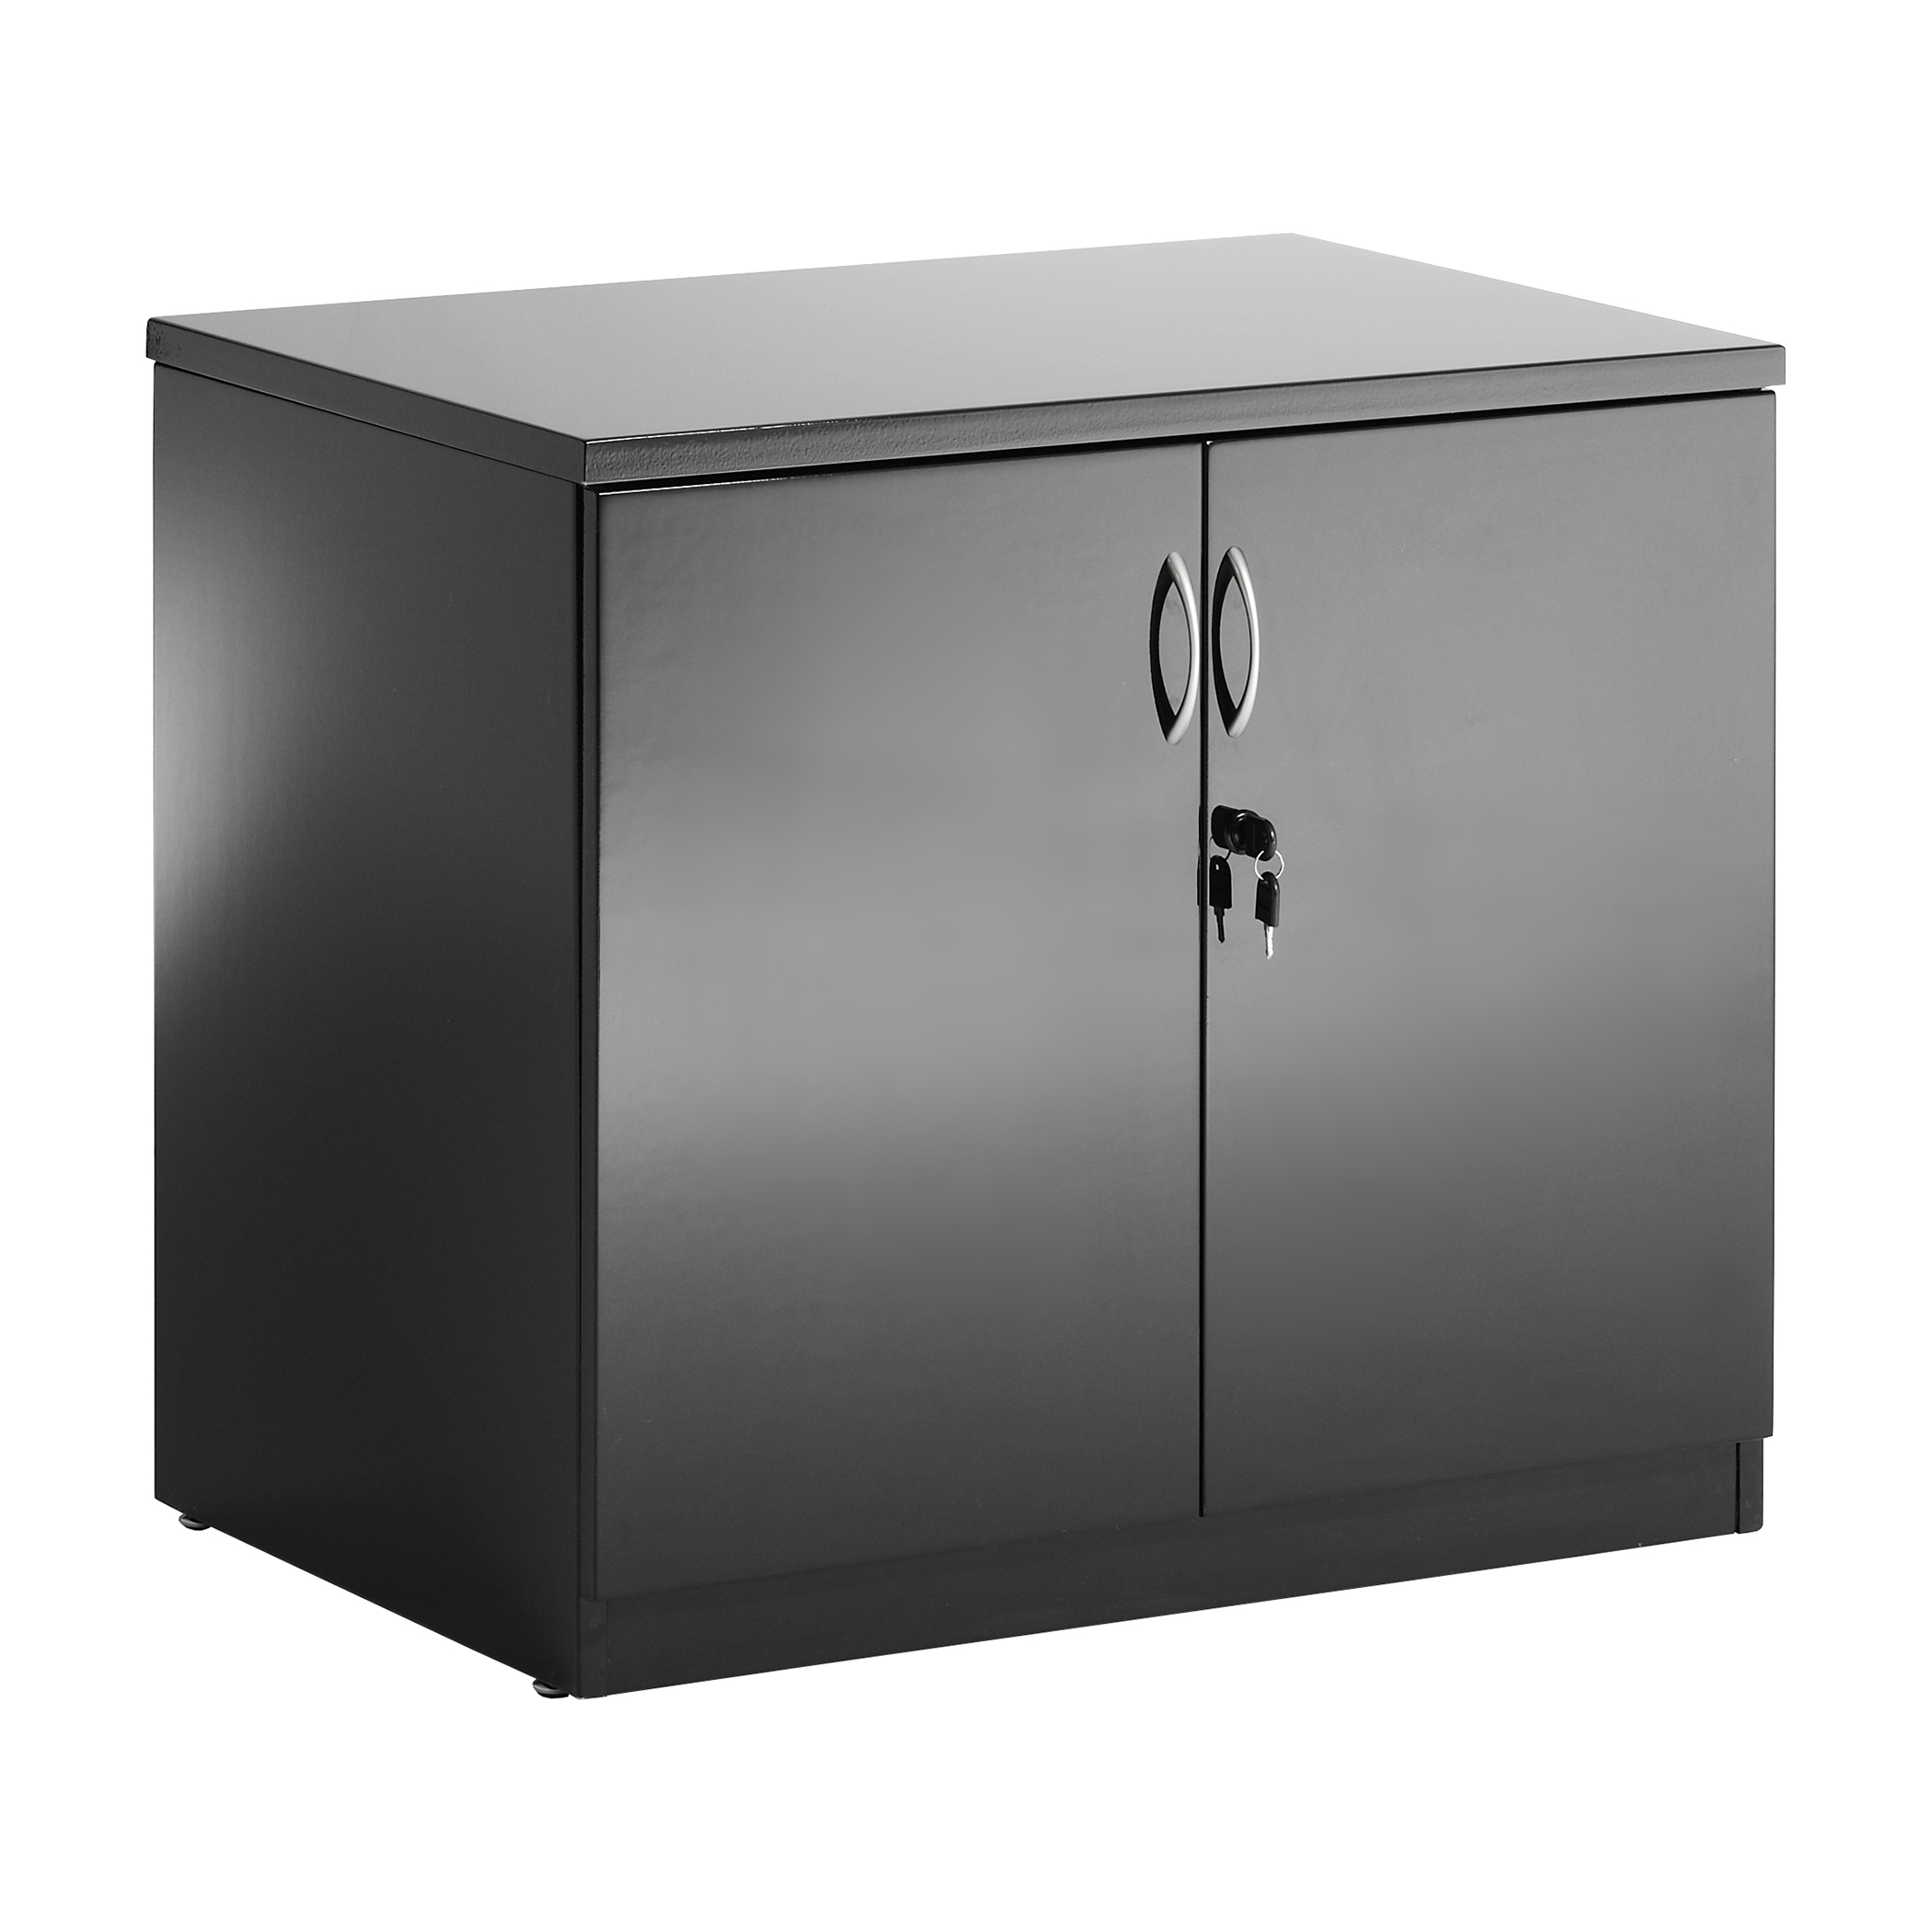 Trexus Desk High Cupboard 800x600x730mm High Gloss Black Ref I000733